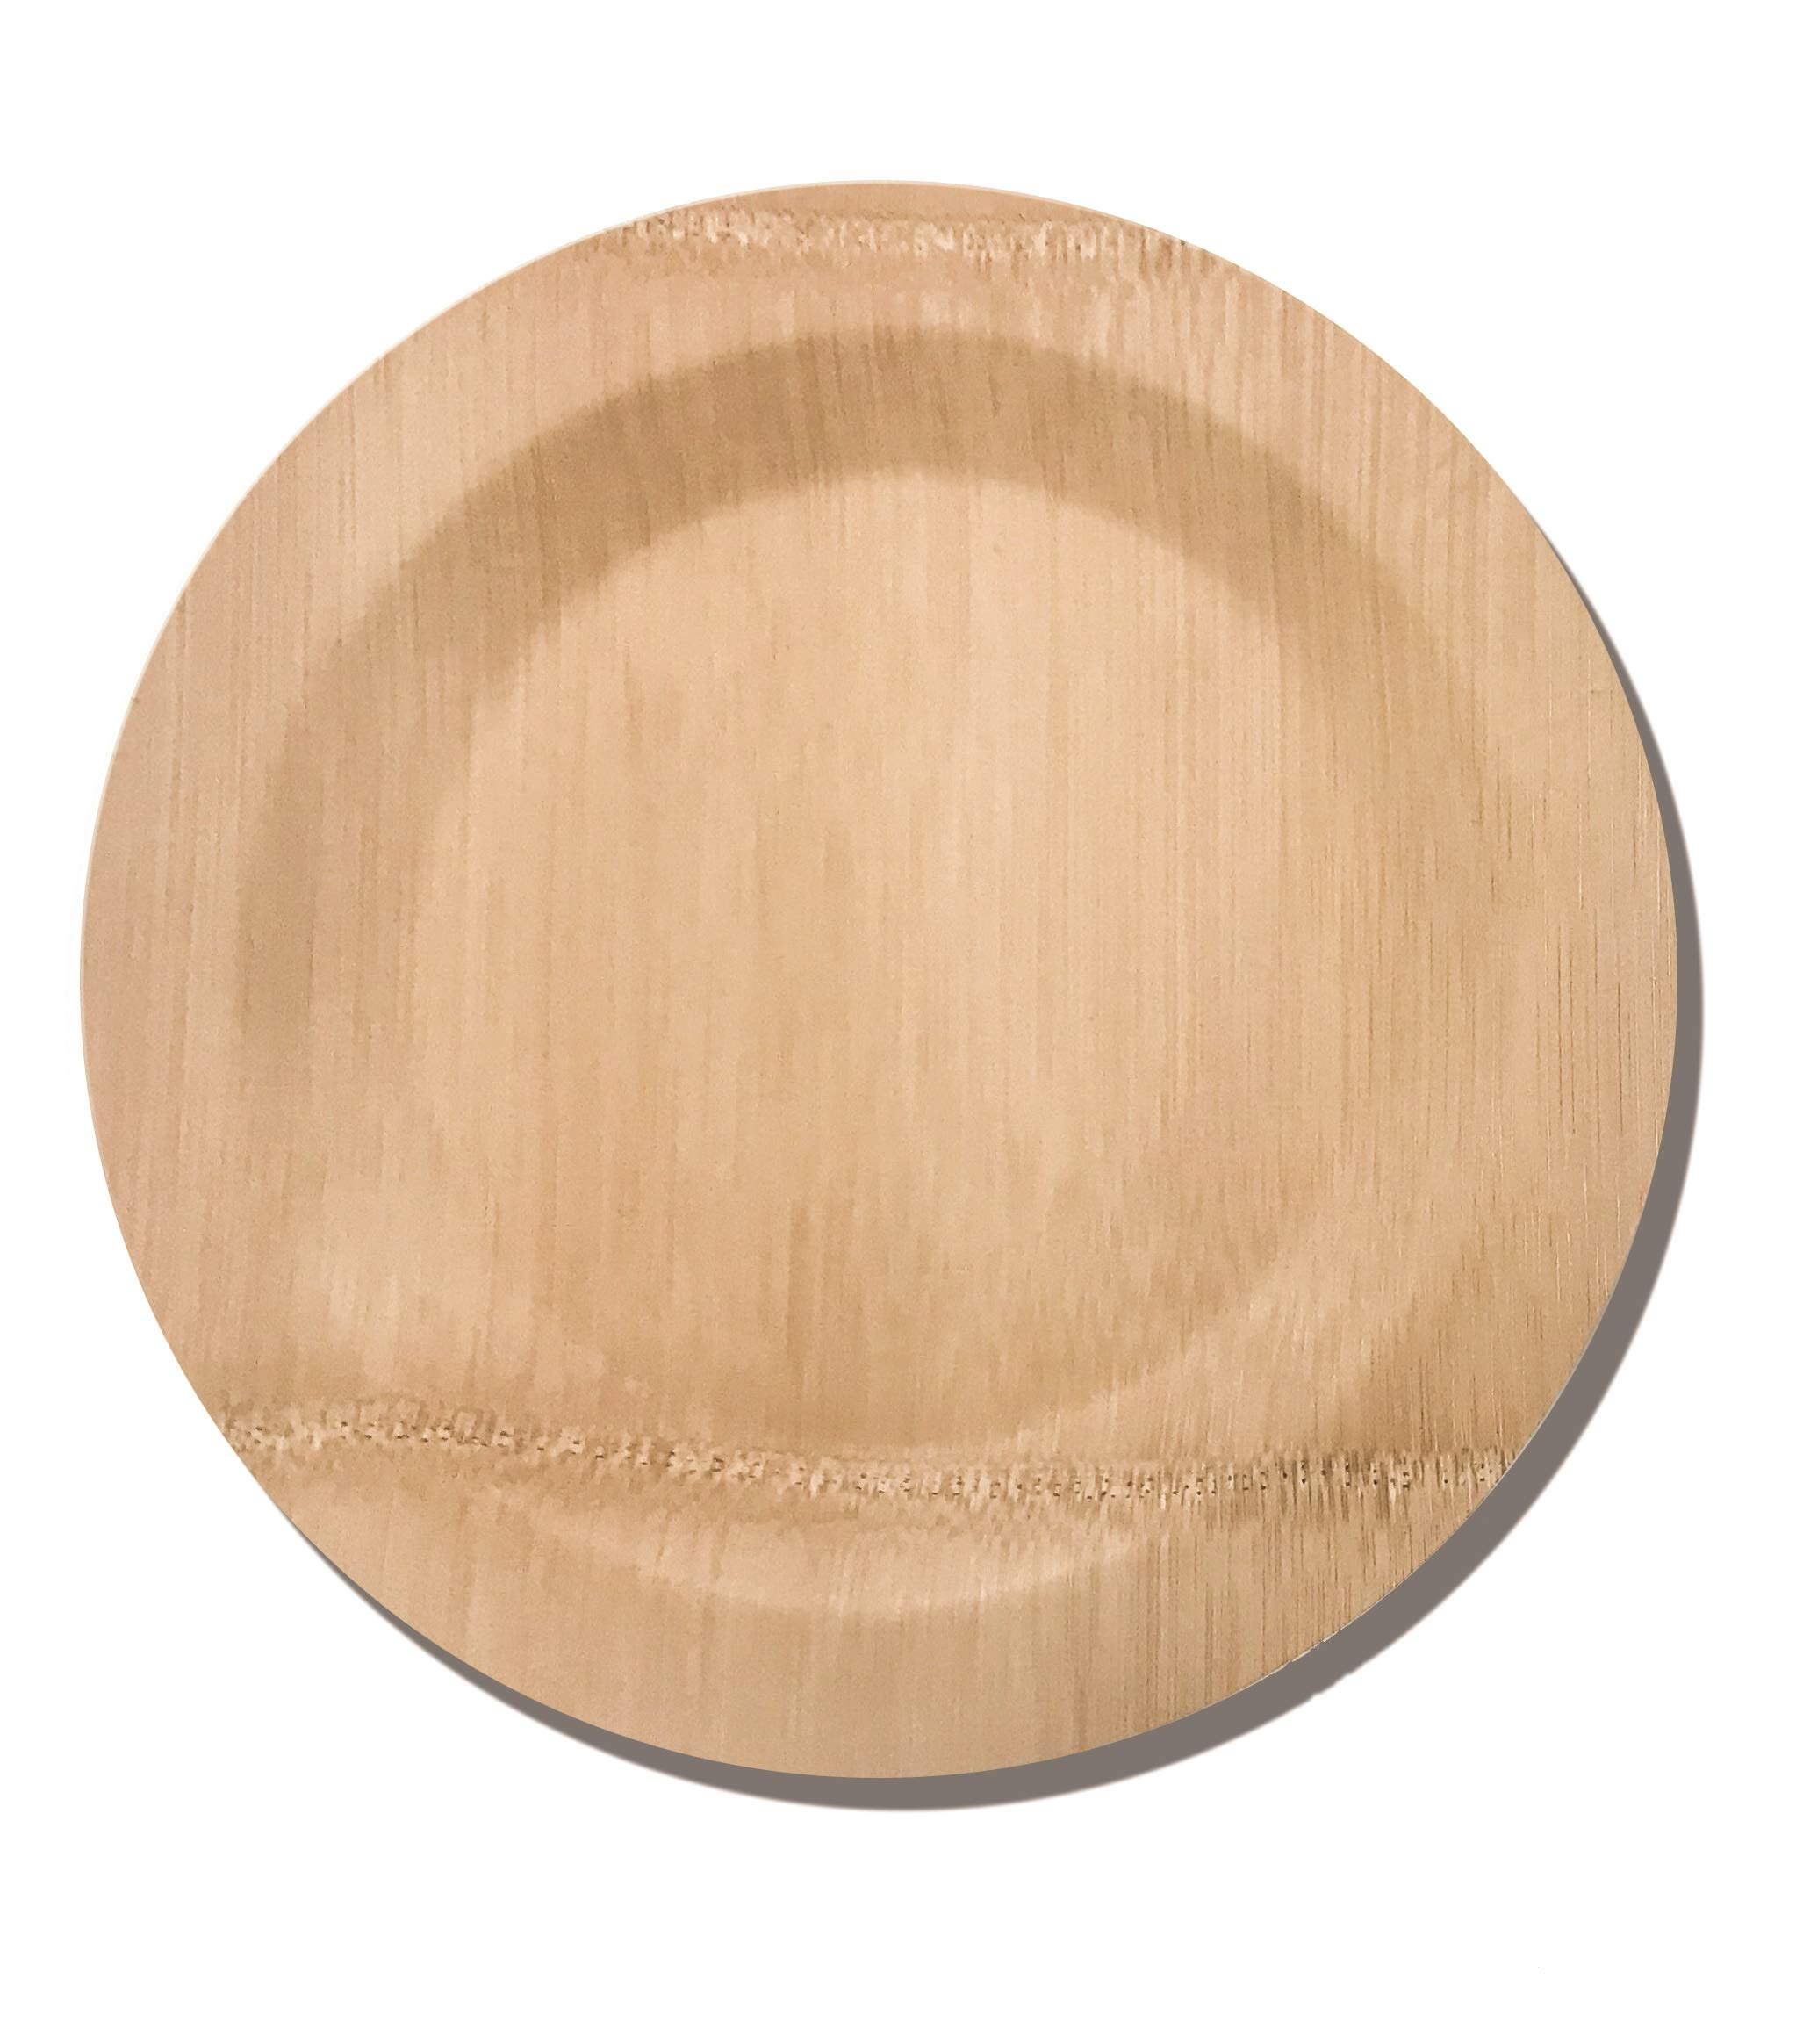 Bamboo Disposable Plates by Bambusa